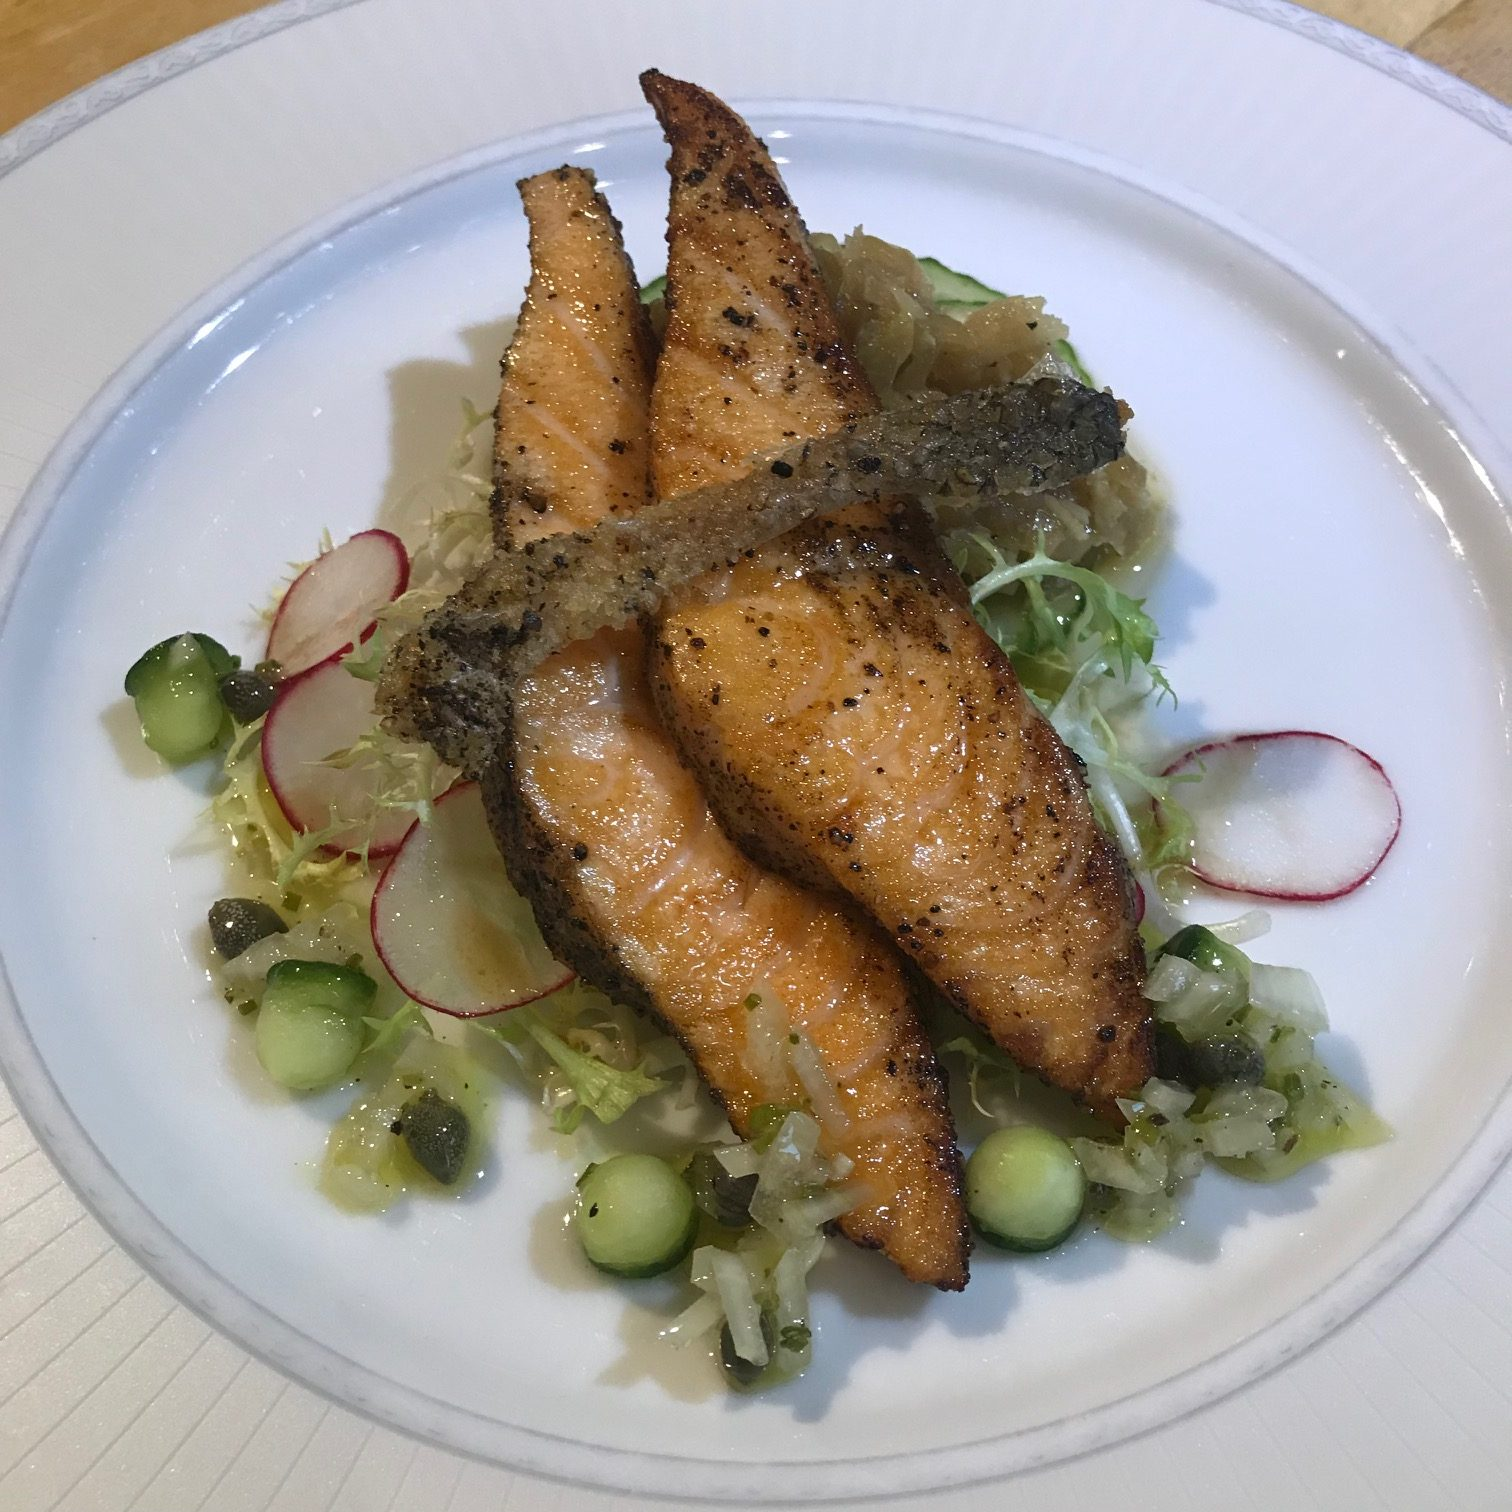 20190912 - Seared Black Peppered Salmon with Cucumber Pickle